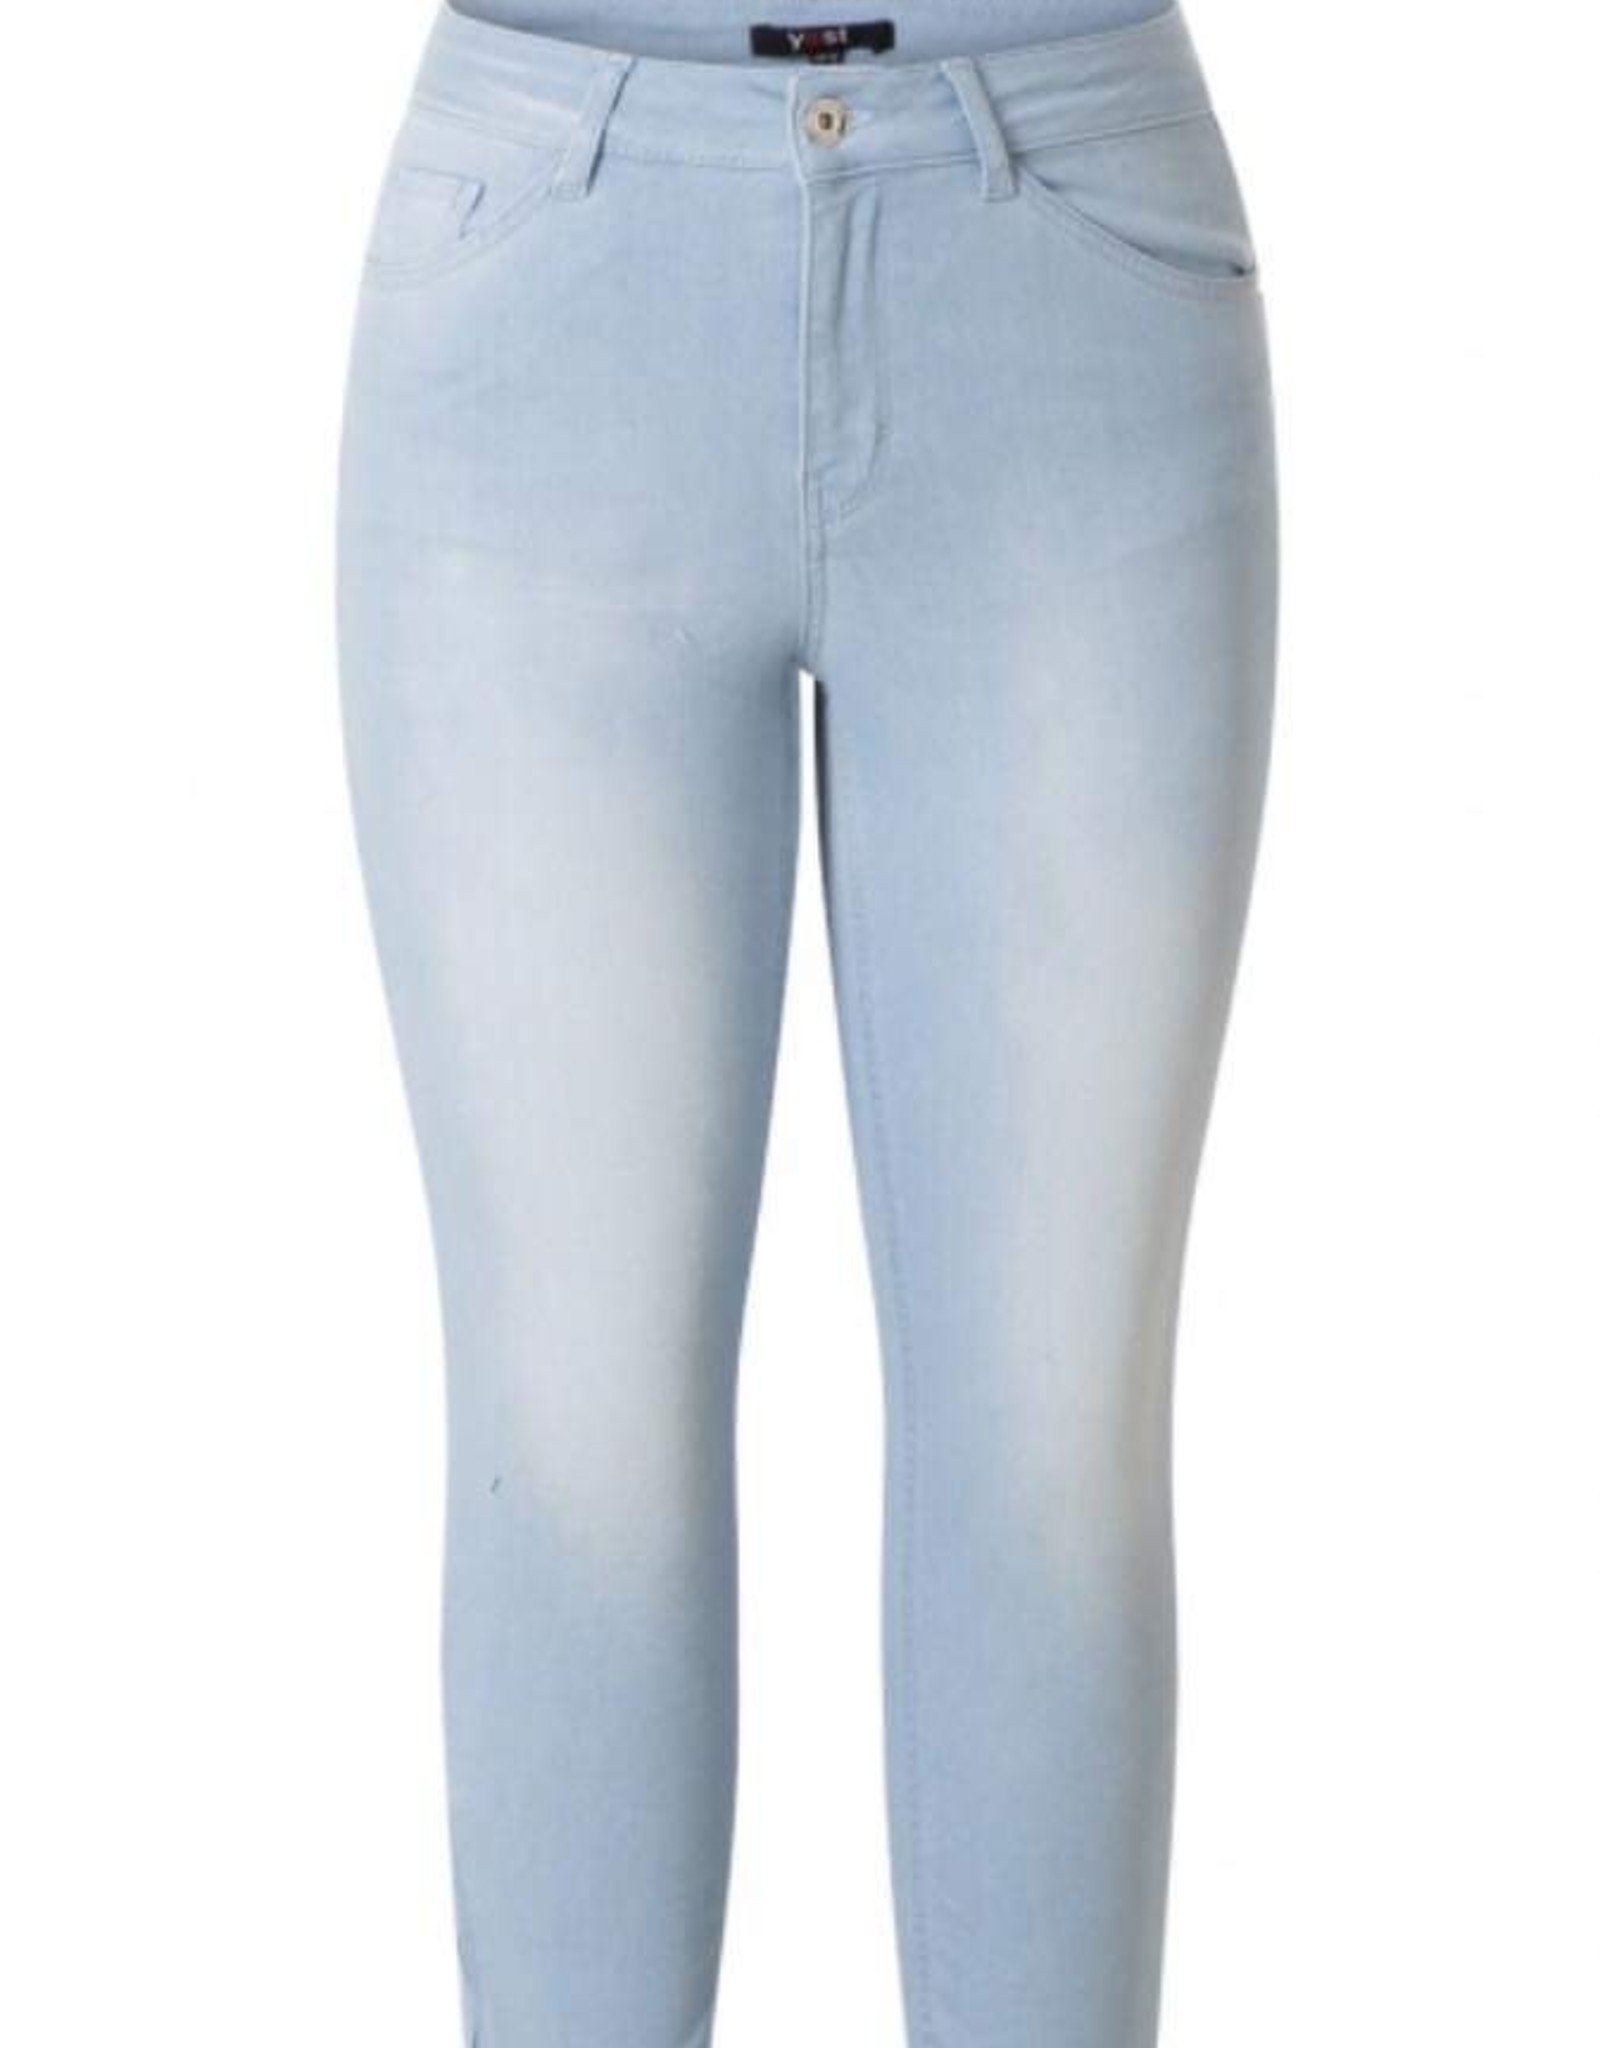 Yest Yest Denim Capri with Zip details at the ankle 39647